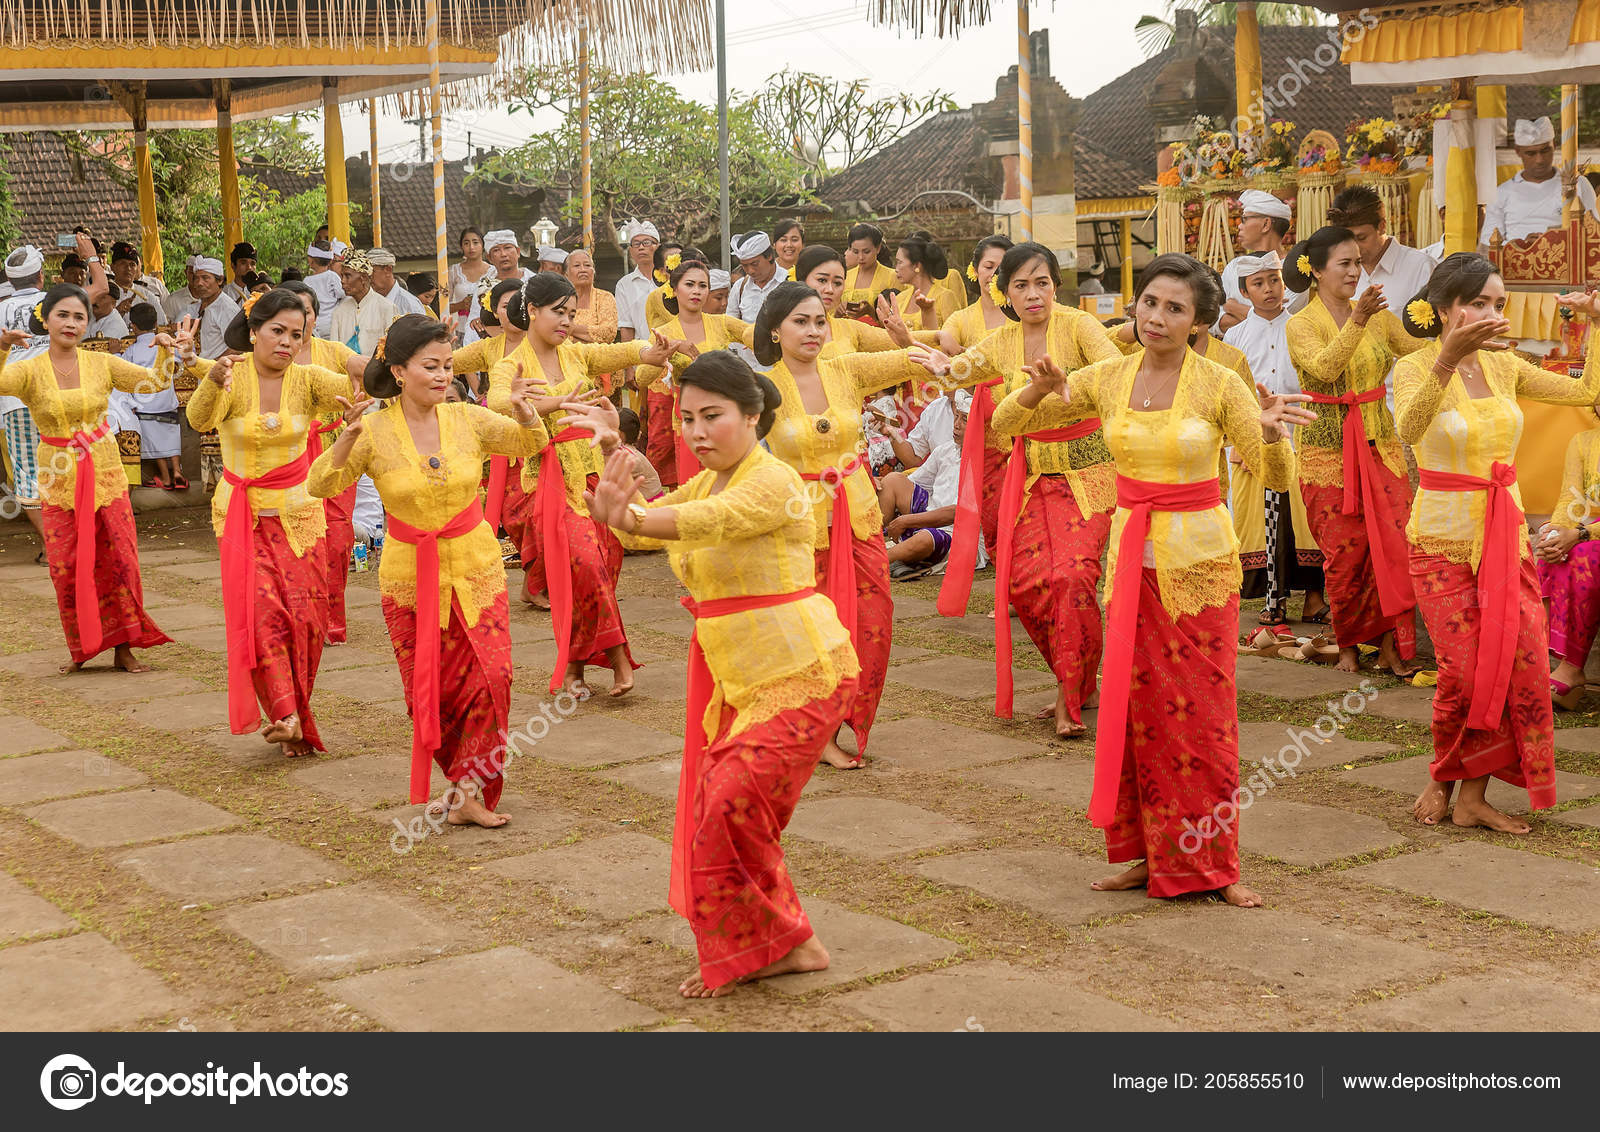 Bali Indonesia March 2018 Beautiful Indonesian People Group